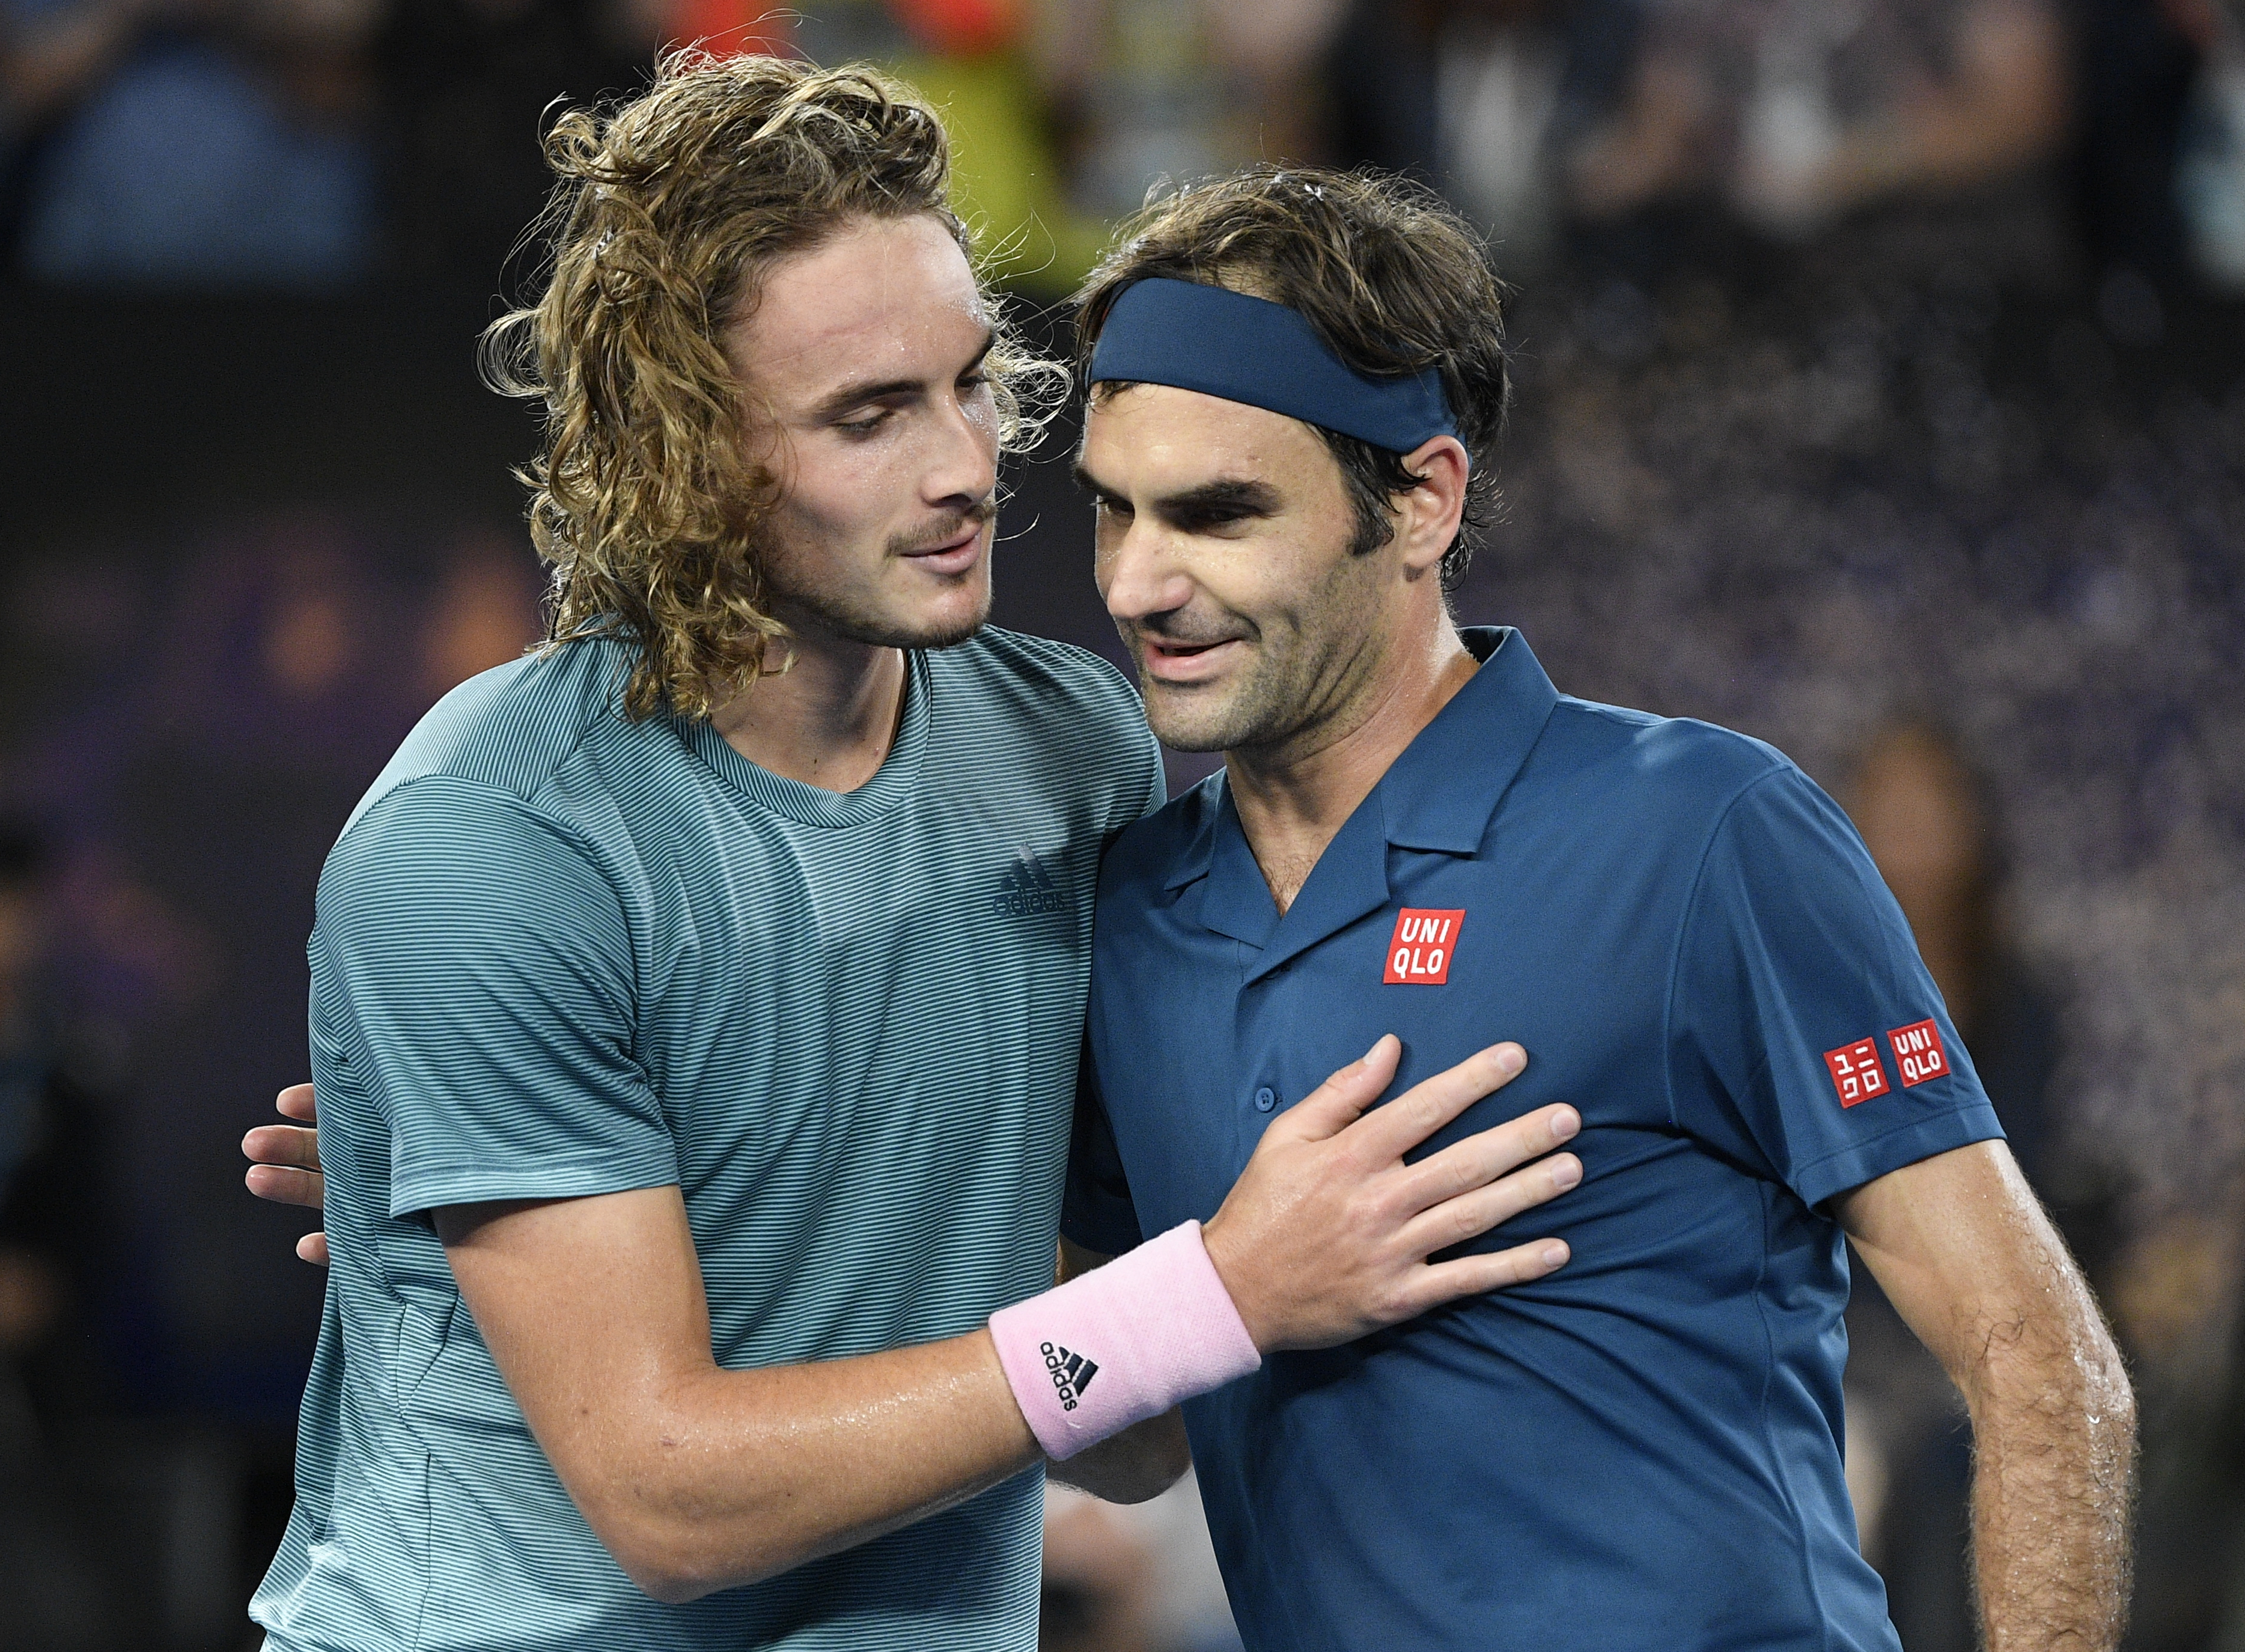 Greece's Stefanos Tsitsipas (left) is congratulated by Roger Federer after winning their fourth-round match at the Australian Open in Melbourne on Sunday.